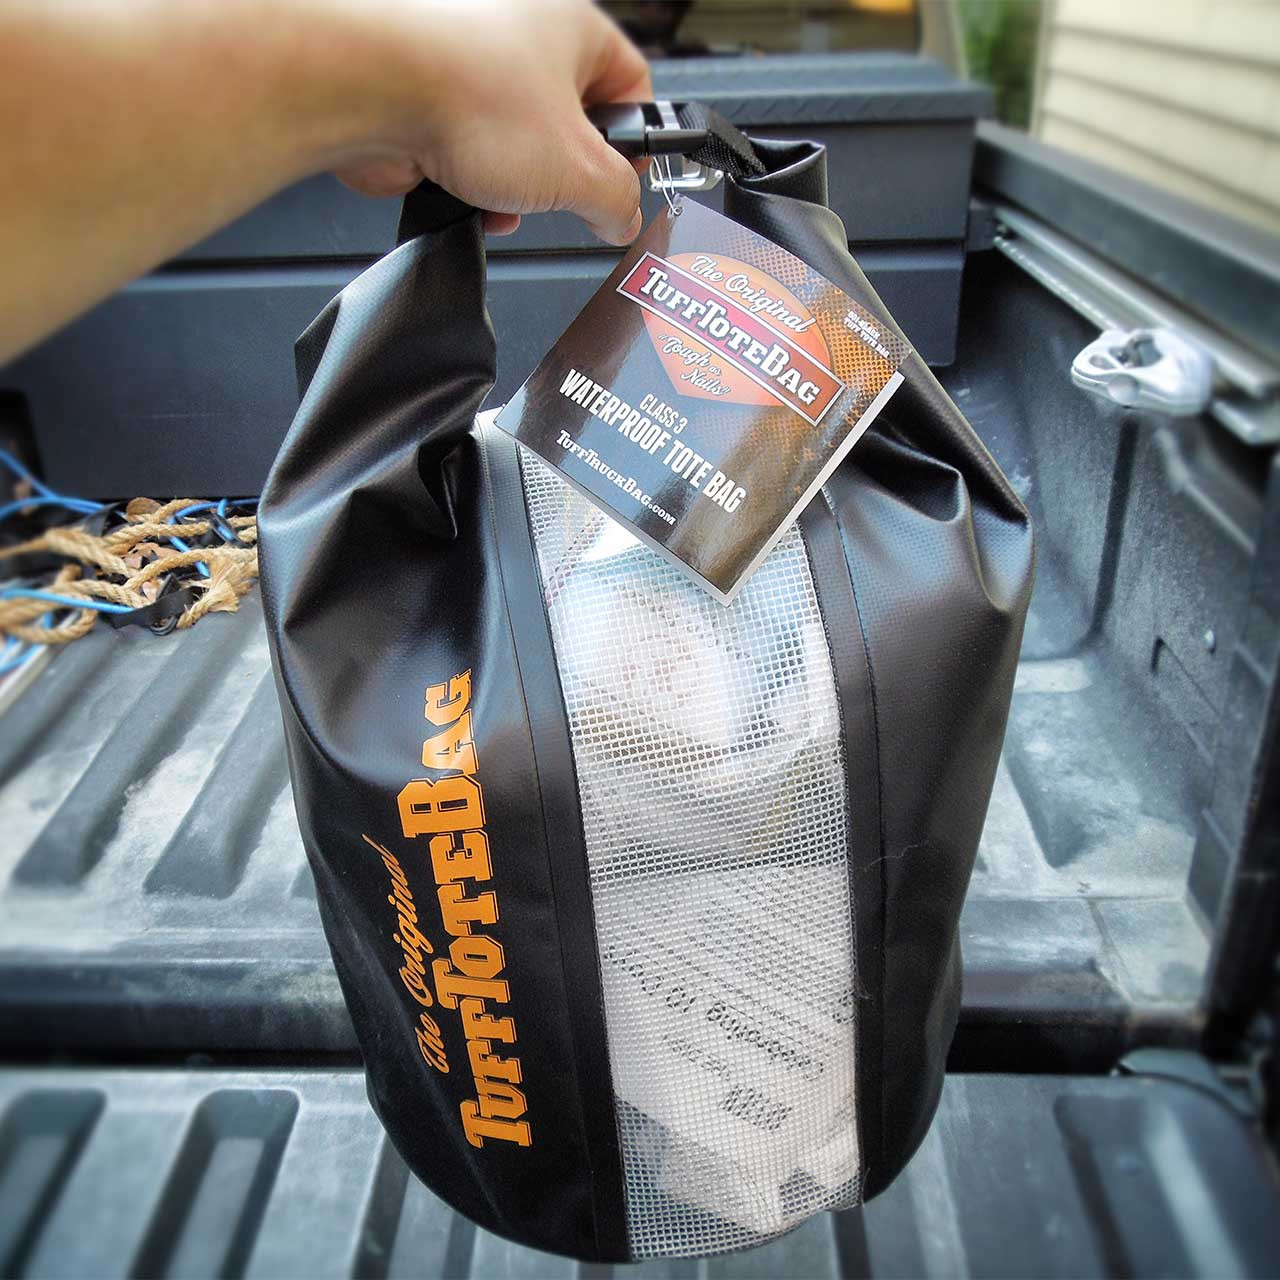 Demonstration of how the roll-to-clip handle works on the class three waterproof black Tuff Tote bag.